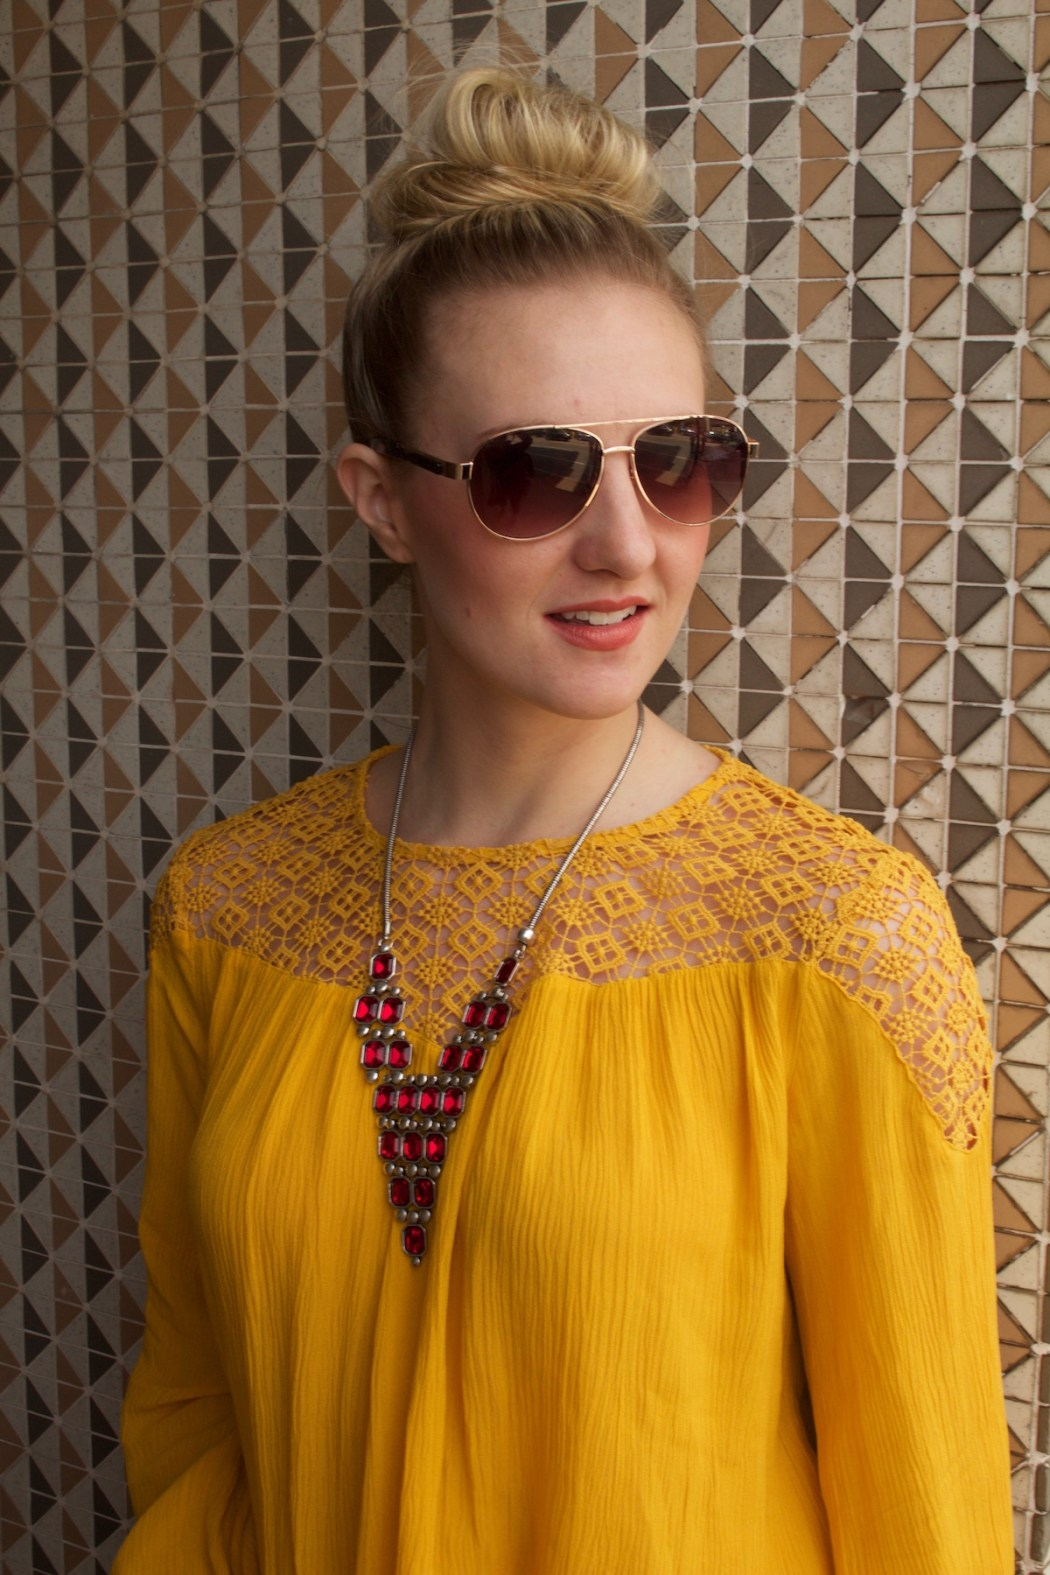 Passion Jewelry Red Pyramid Necklace | styled by Allyn Lewis